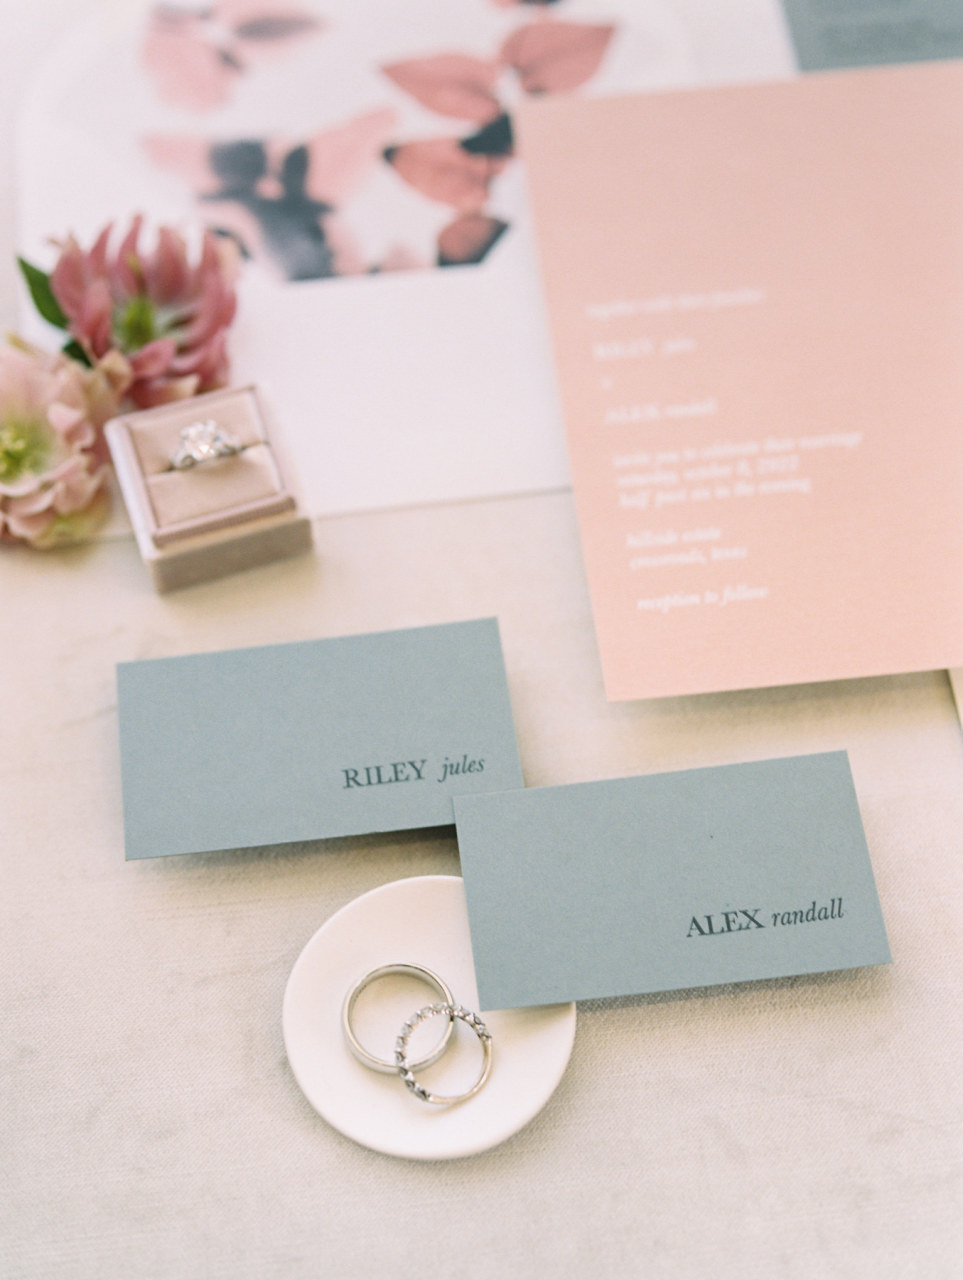 Blush and blue wedding stationery by Lyons Paperie